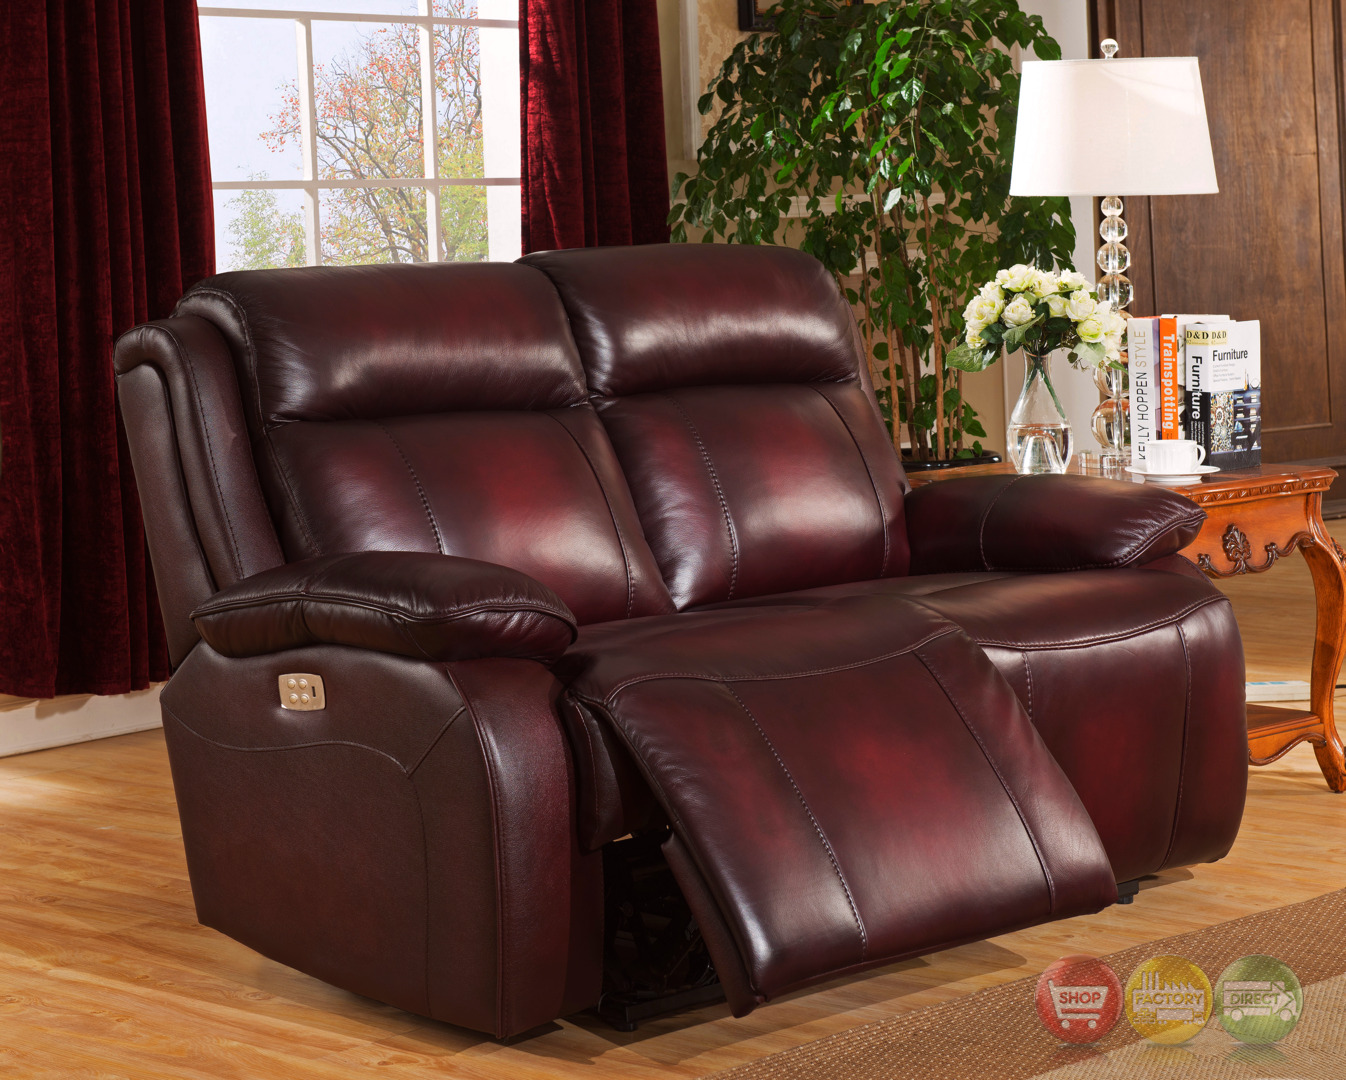 Faraday Power Recline 3pc Sofa Set In Deep Red Real